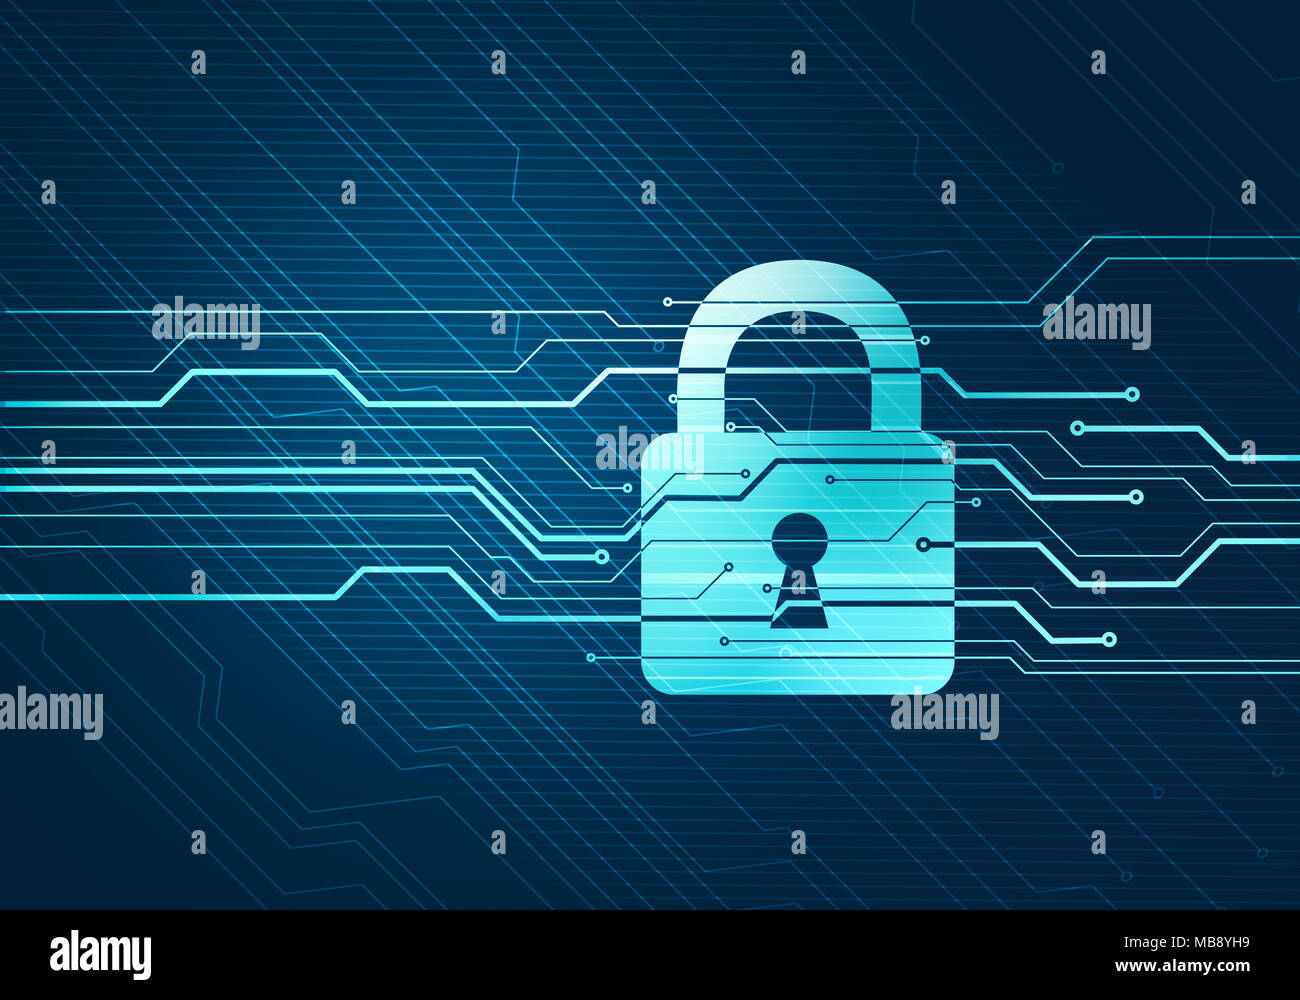 abstract digital concept of internet data security and safety with